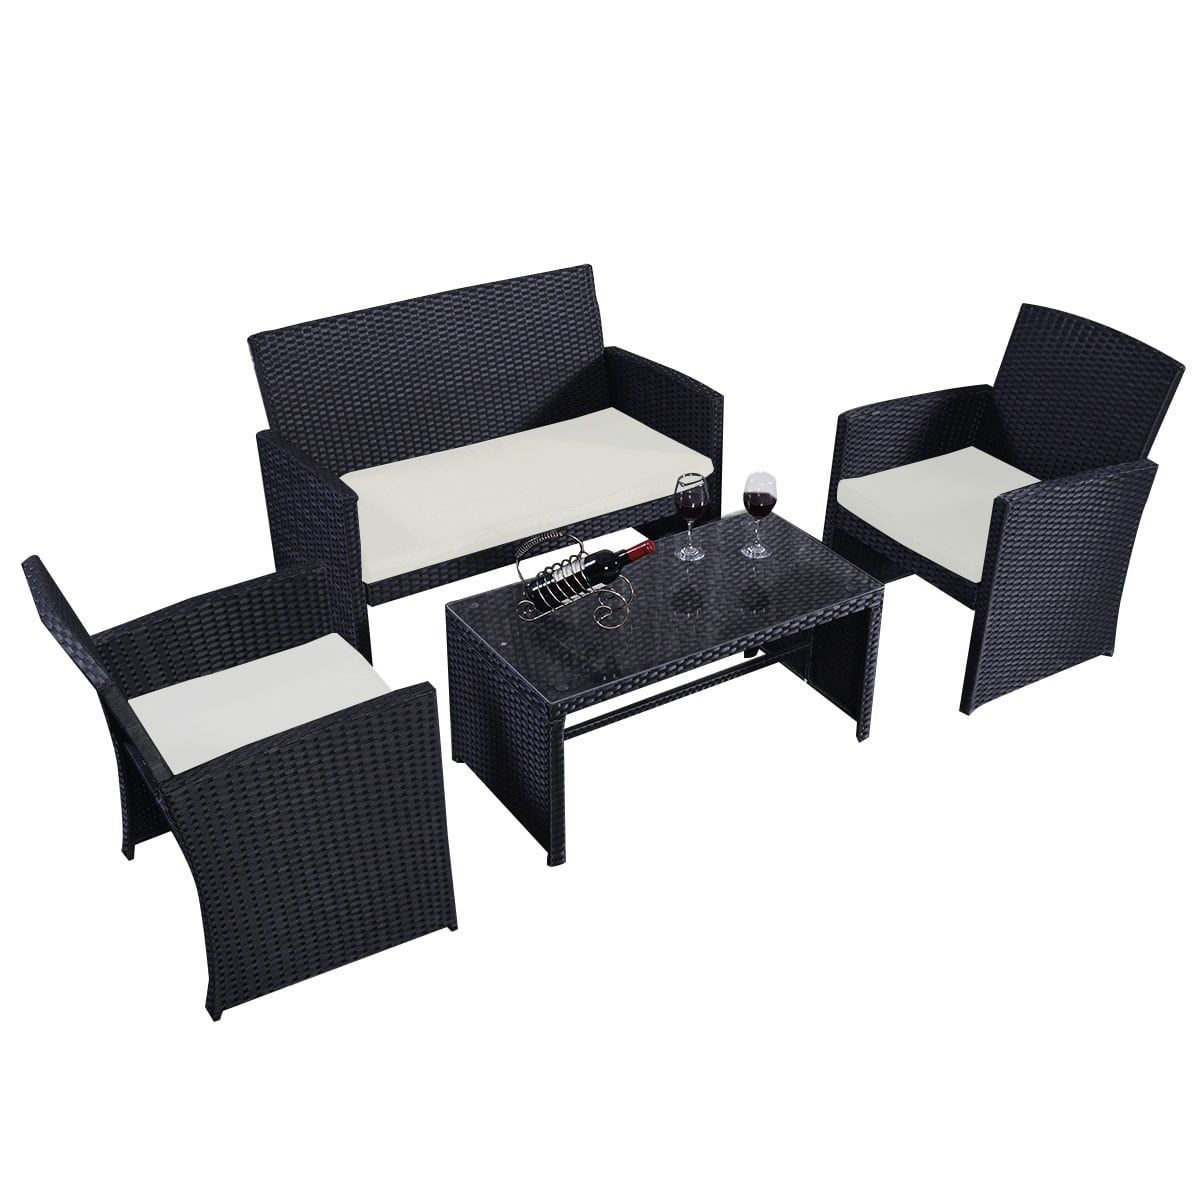 Costway pc rattan patio furniture set garden lawn sofa wicker